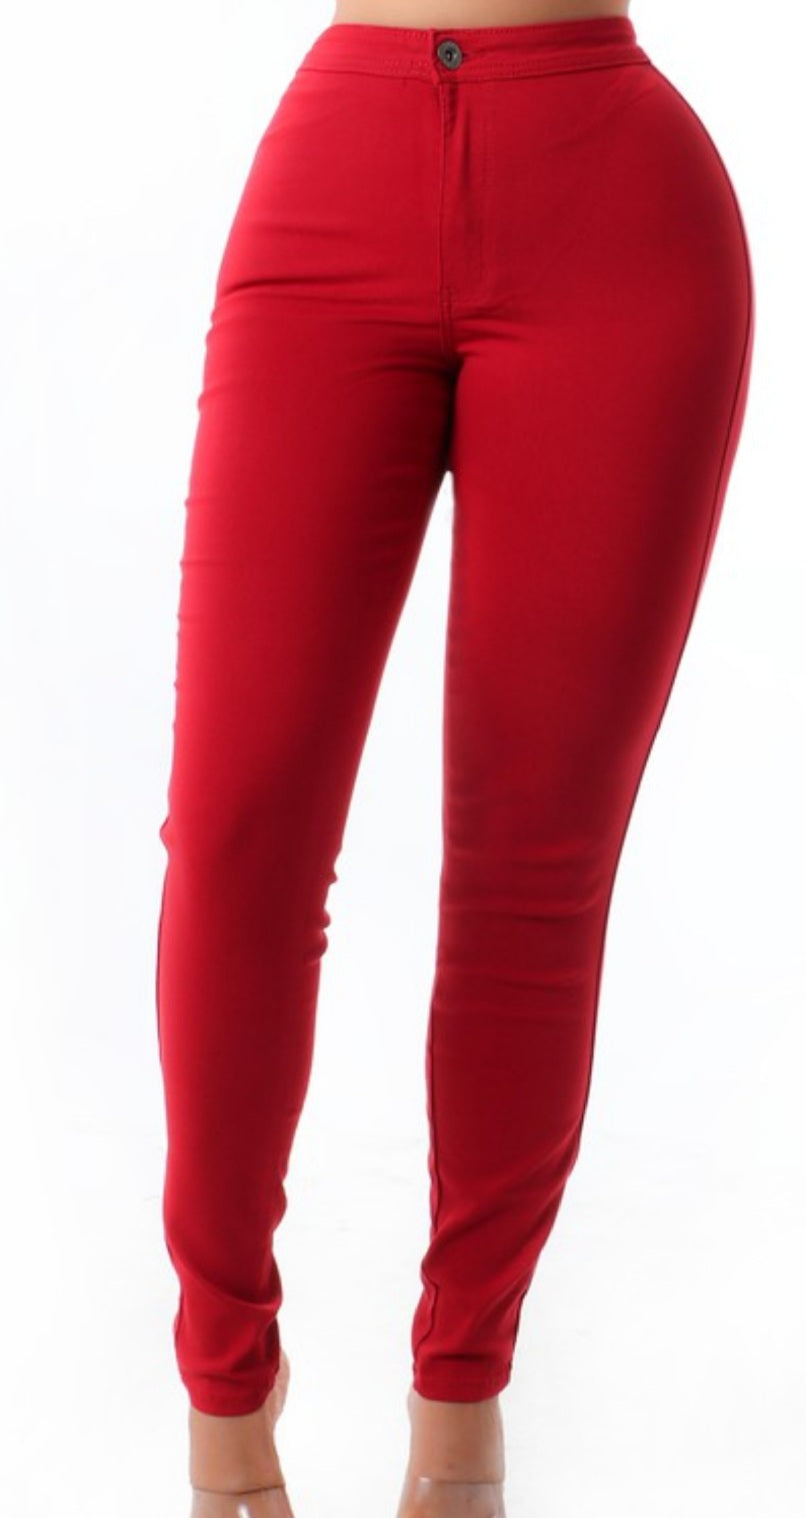 Cranberry Stiletto High Waist Pants